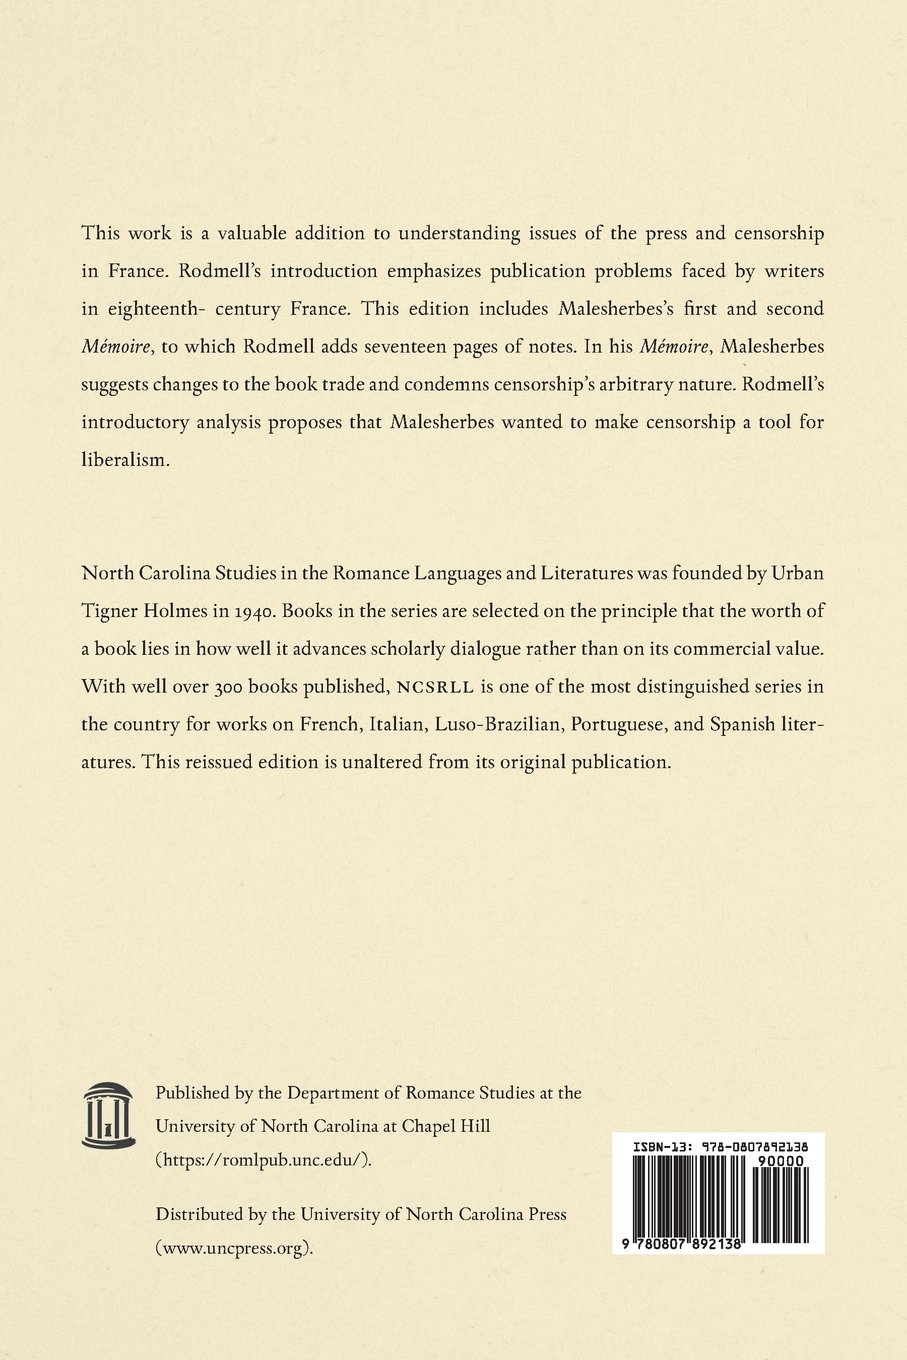 Malesherbes: Mémoires sur la librairie et sur la liberté de la presse (North Carolina Studies in the Romance Languages and Literatures) by Brand: U.N.C., Dept. of Romance Languages : [distributed by University of North Carolina Press]